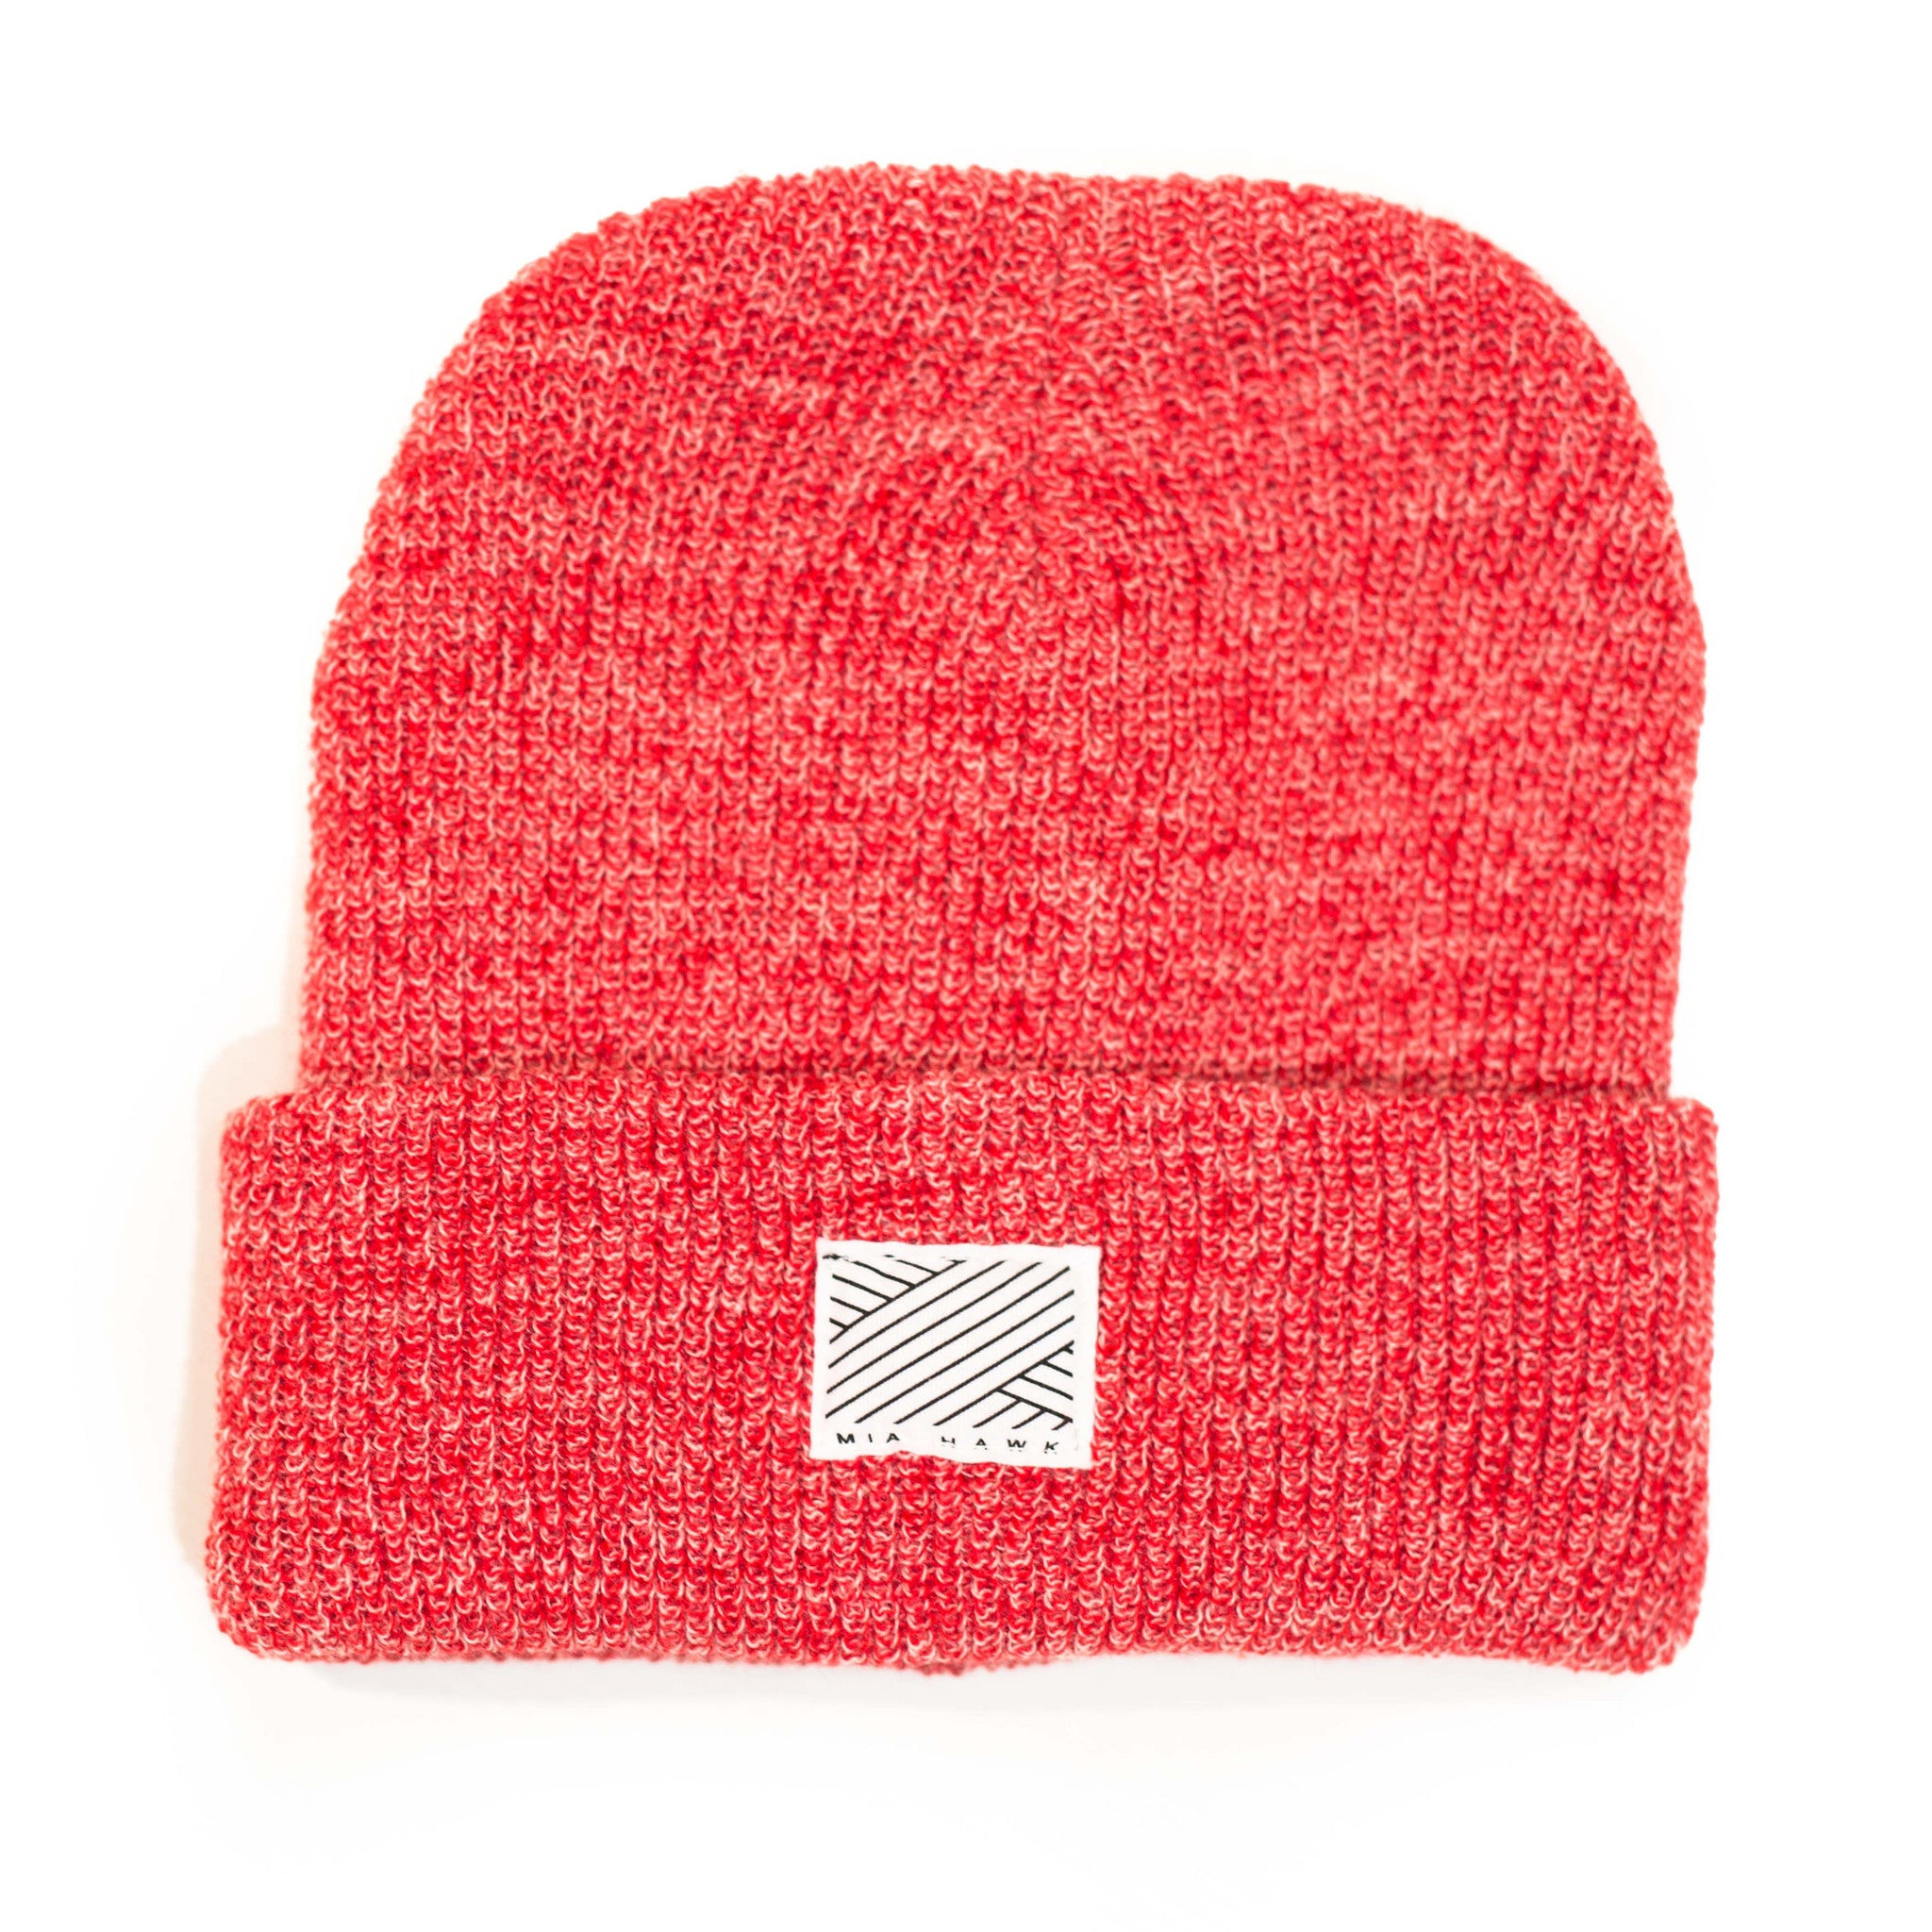 Intertwined Speckled Red Beanie